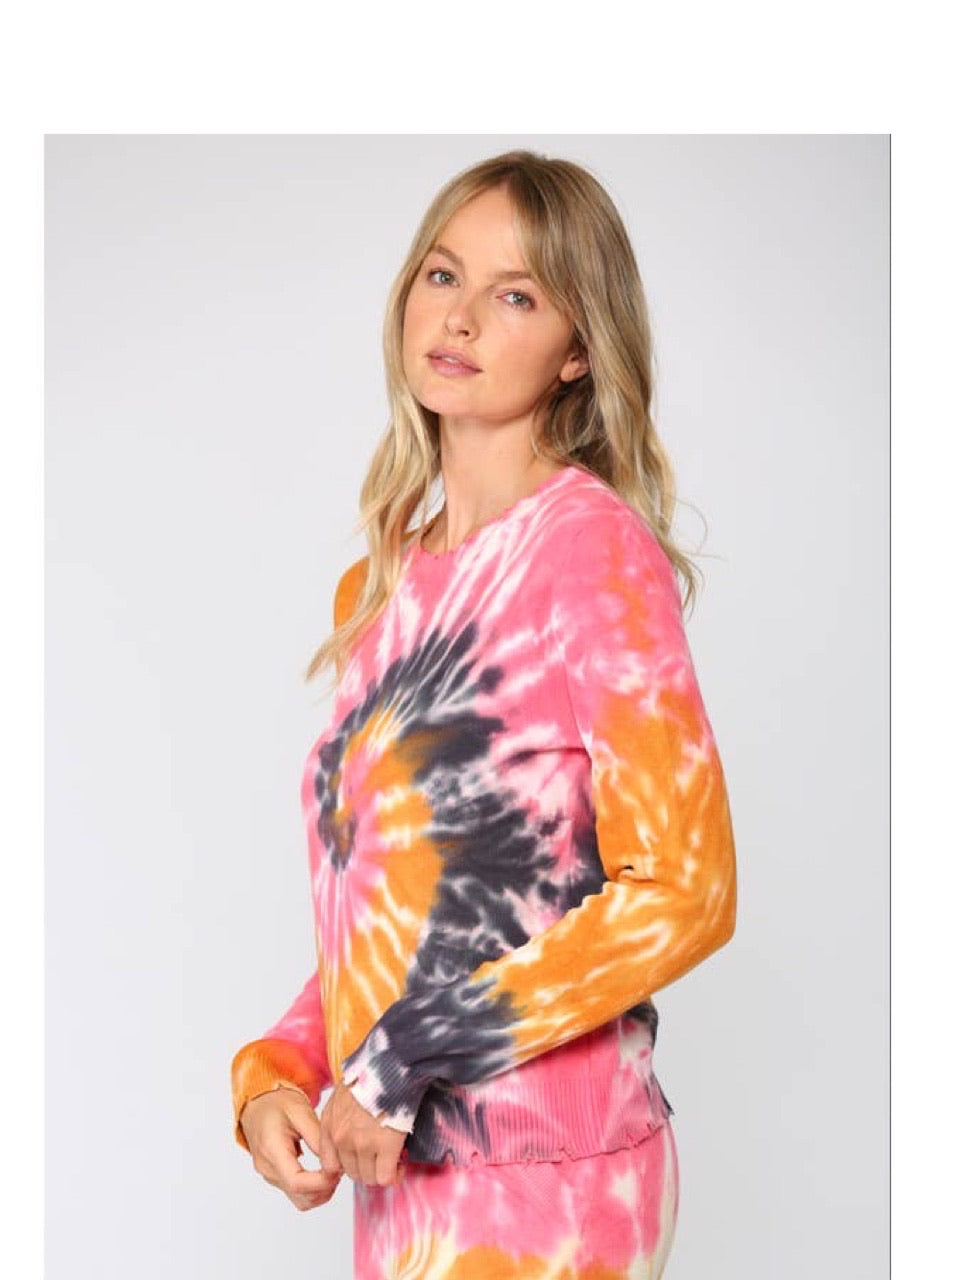 FATE TIE DYE DISTRESSED SWEATER